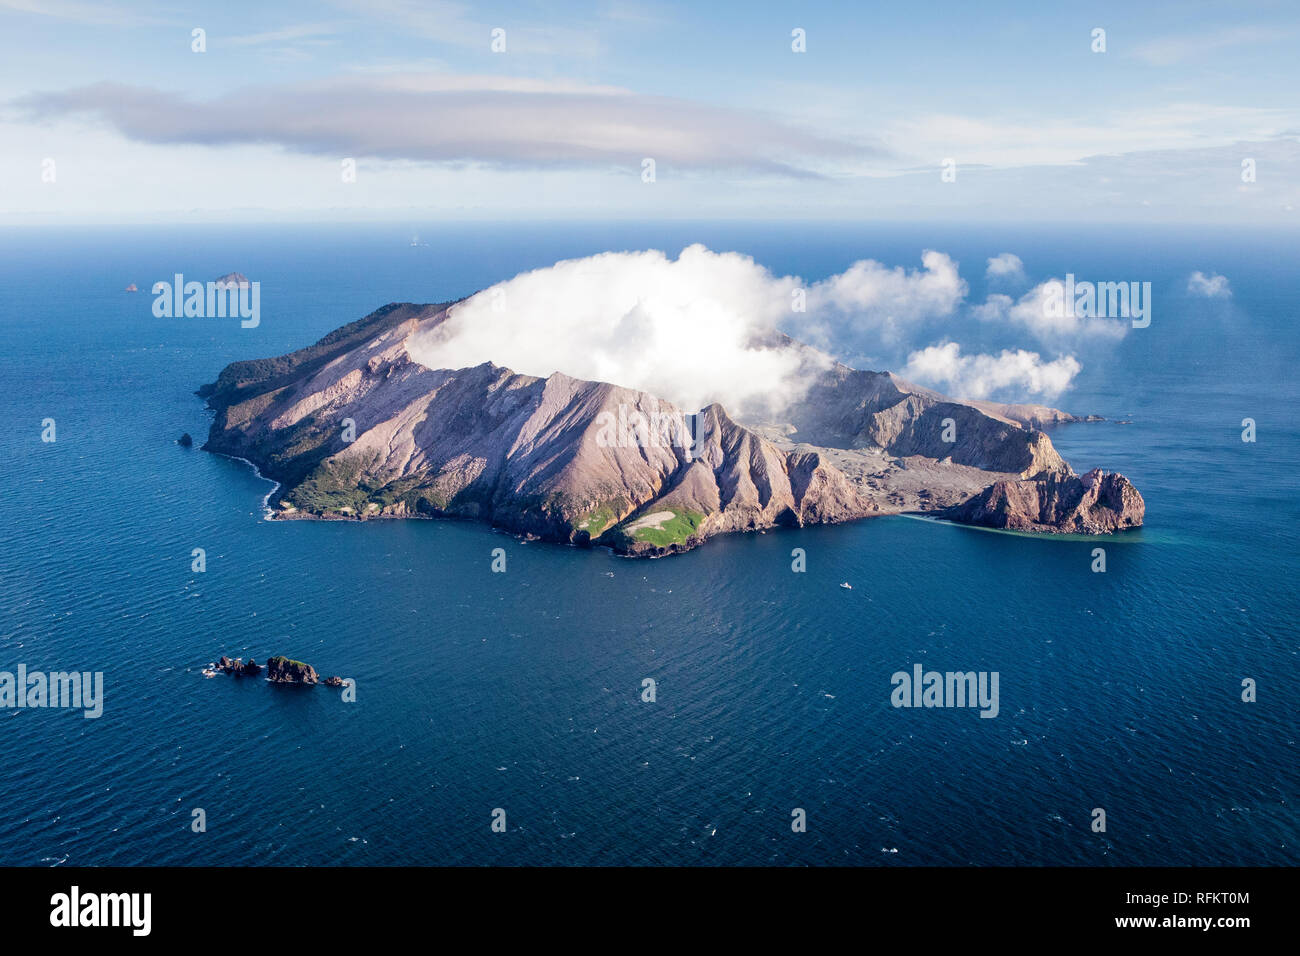 Rugged and unpredictable, Whakaari or White Island draws scientists and visitors to see its amazing landscape. - Stock Image